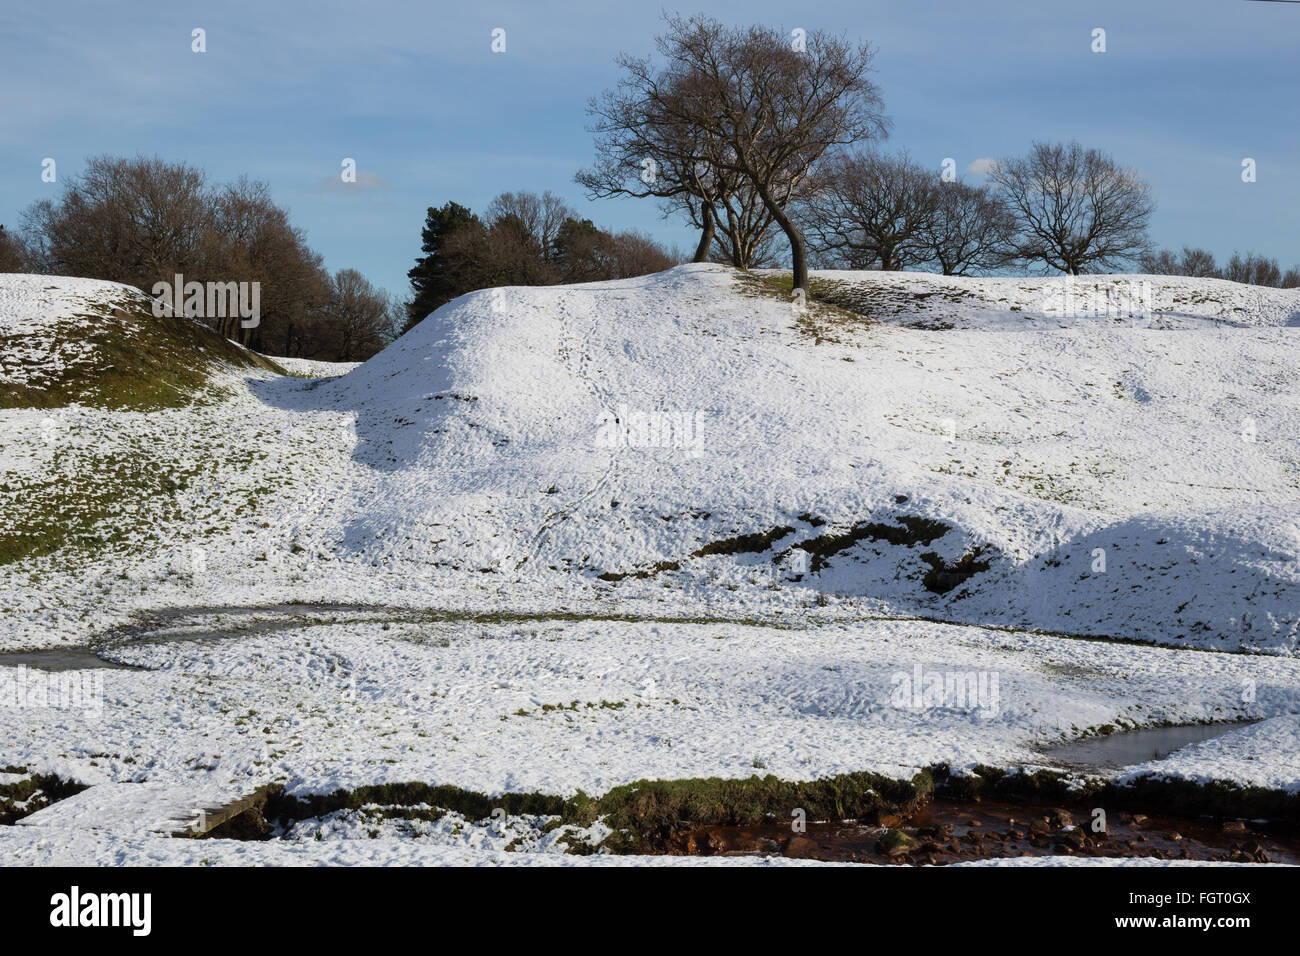 Rough Castle Roman Fort on the Roman era Antonine Wall, in Falkirk, Scotland. - Stock Image